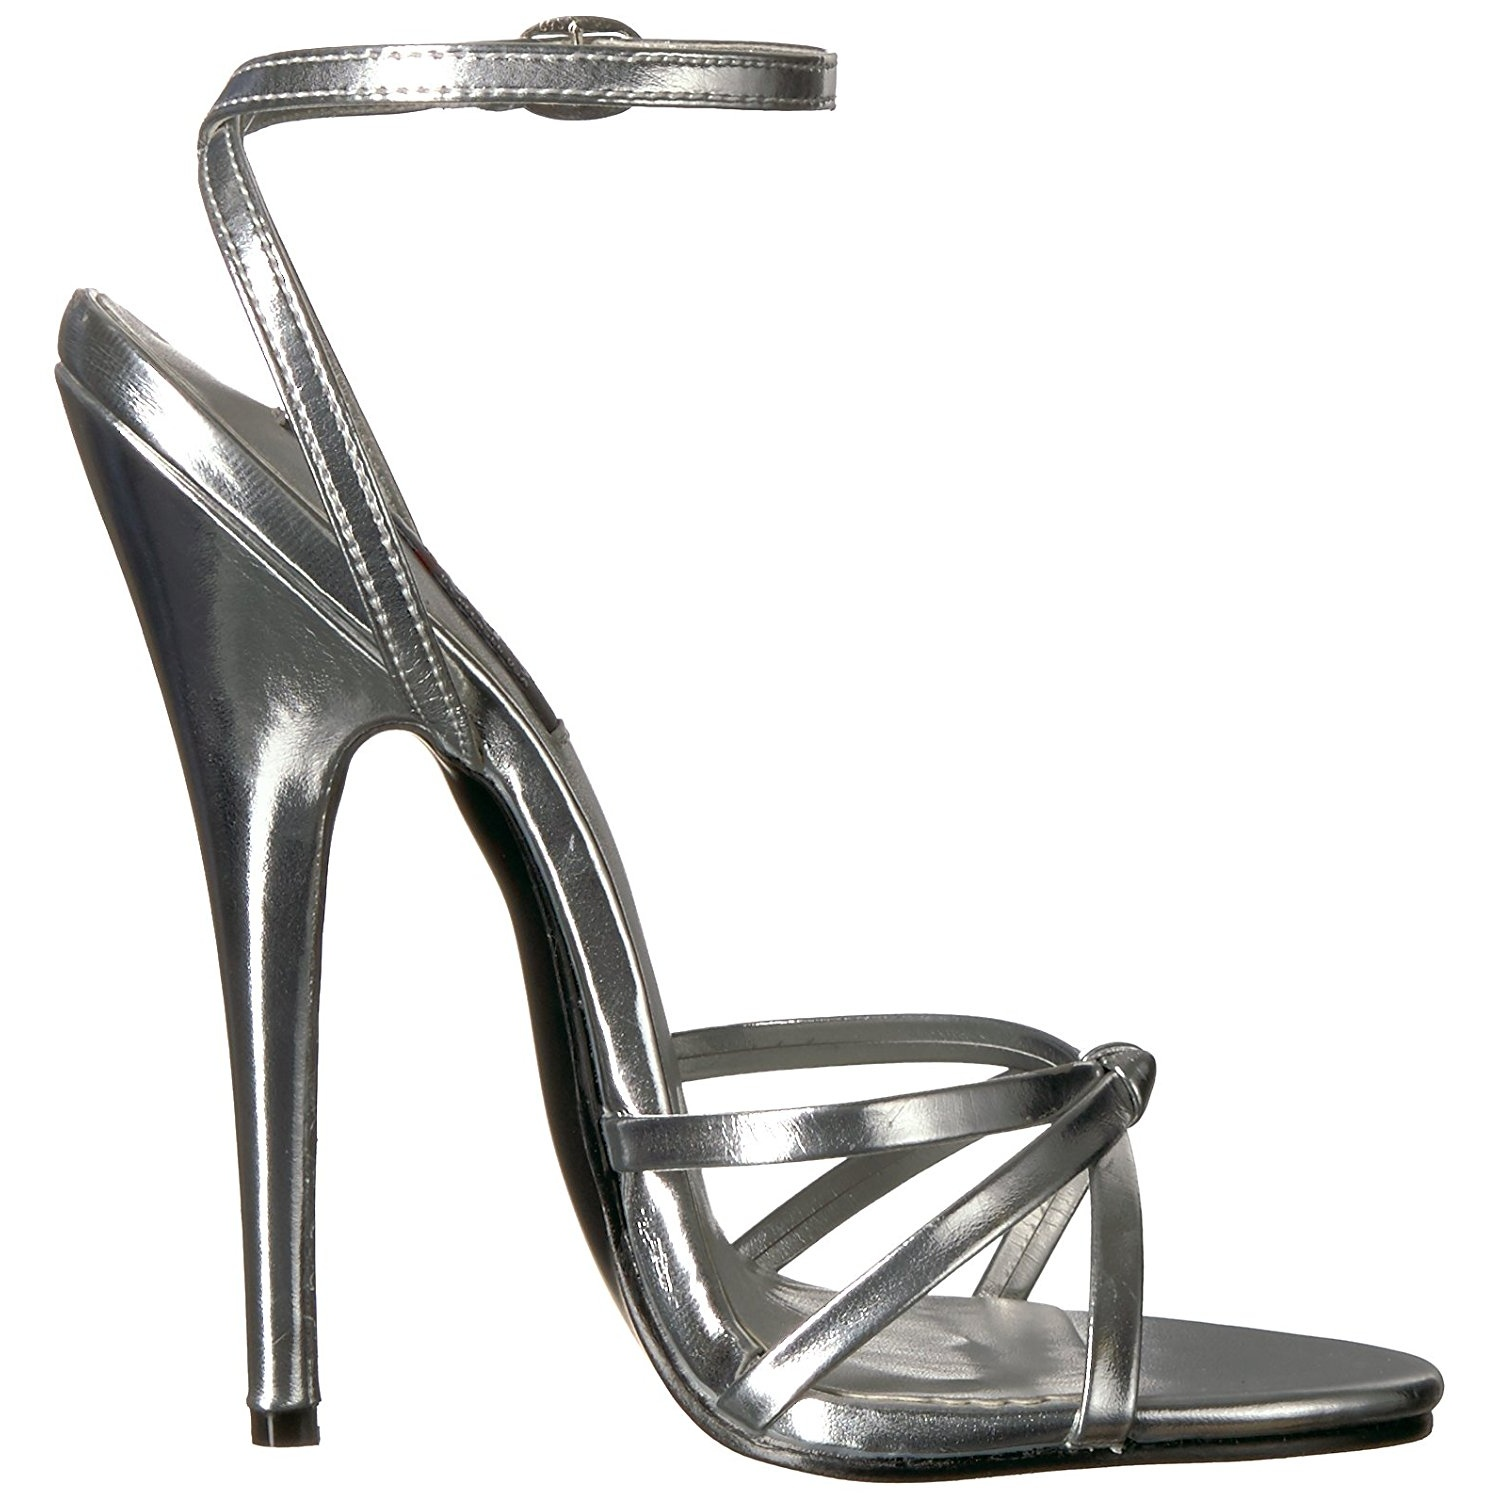 526ae21c4c7 Silver 15 cm Devious DOMINA-108 high heeled sandals